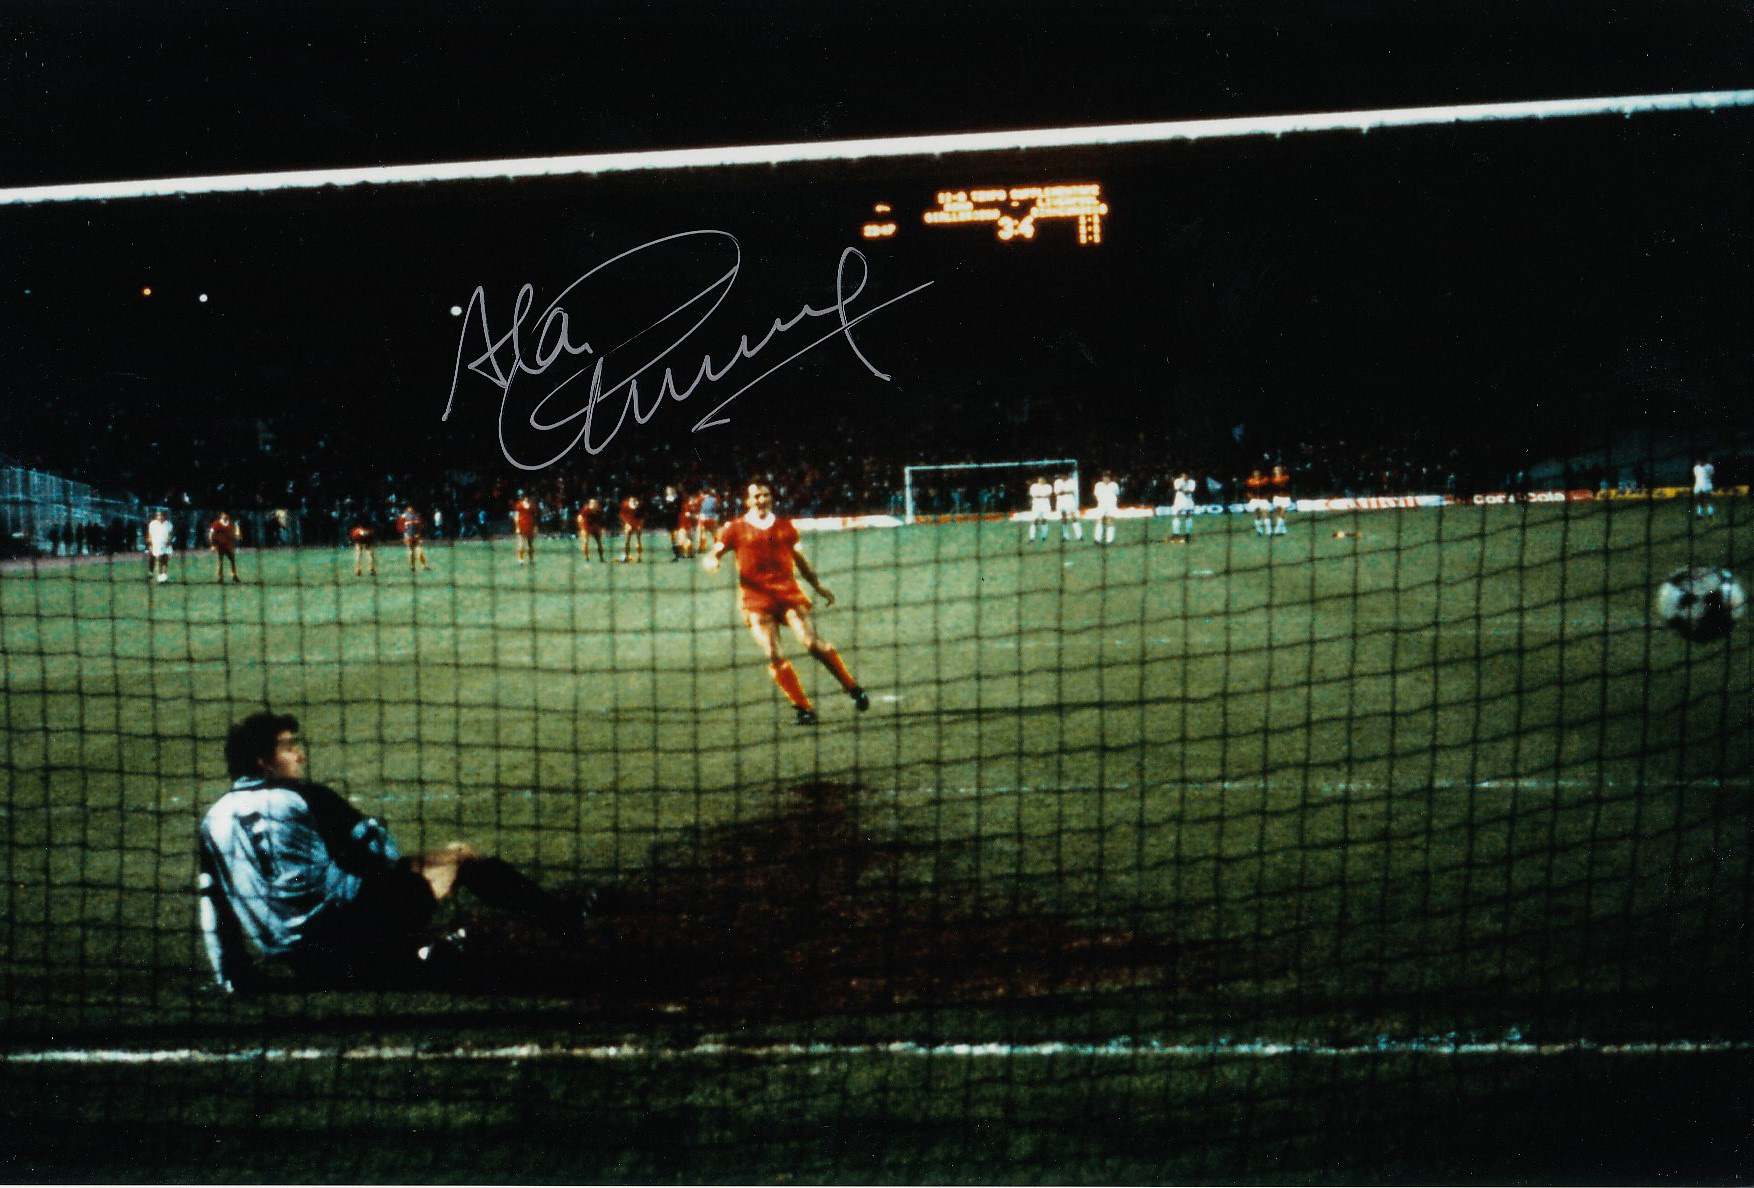 Autographed Alan Kennedy 12 X 8 Photo Col, Depicting A Superb Image Showing Kennedy Scoring The